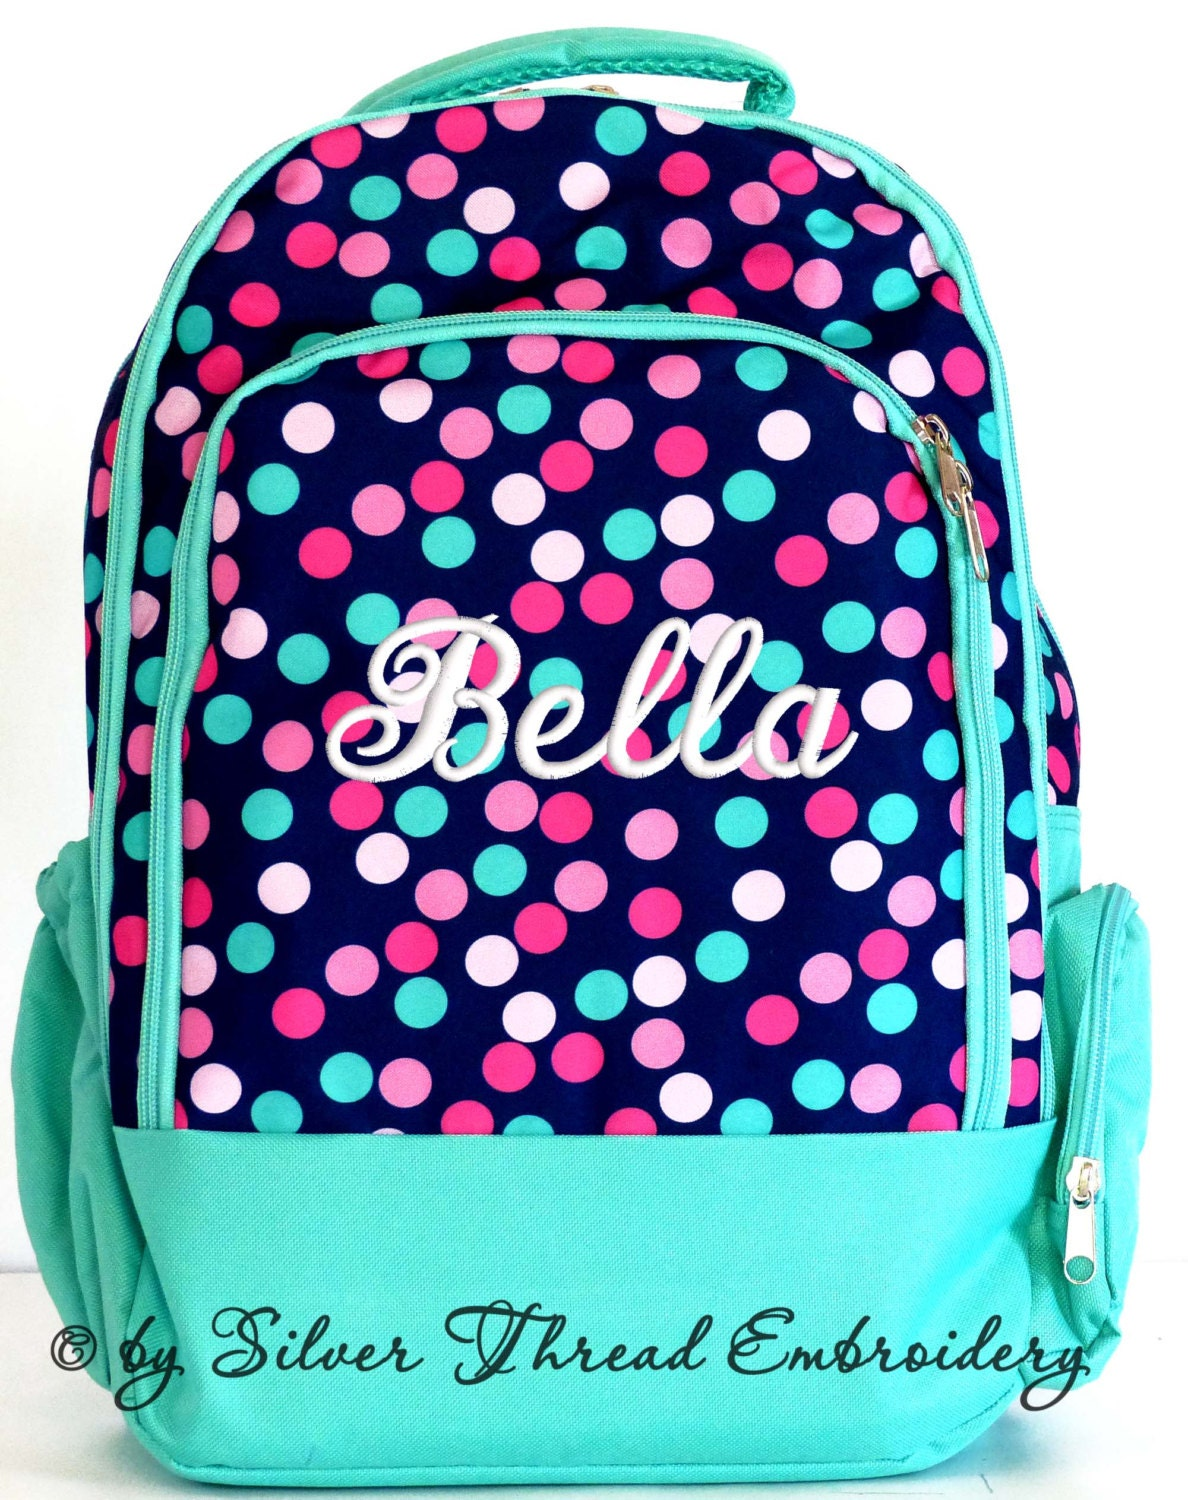 Girls Monogram Backpack Polka Dots School Personalized